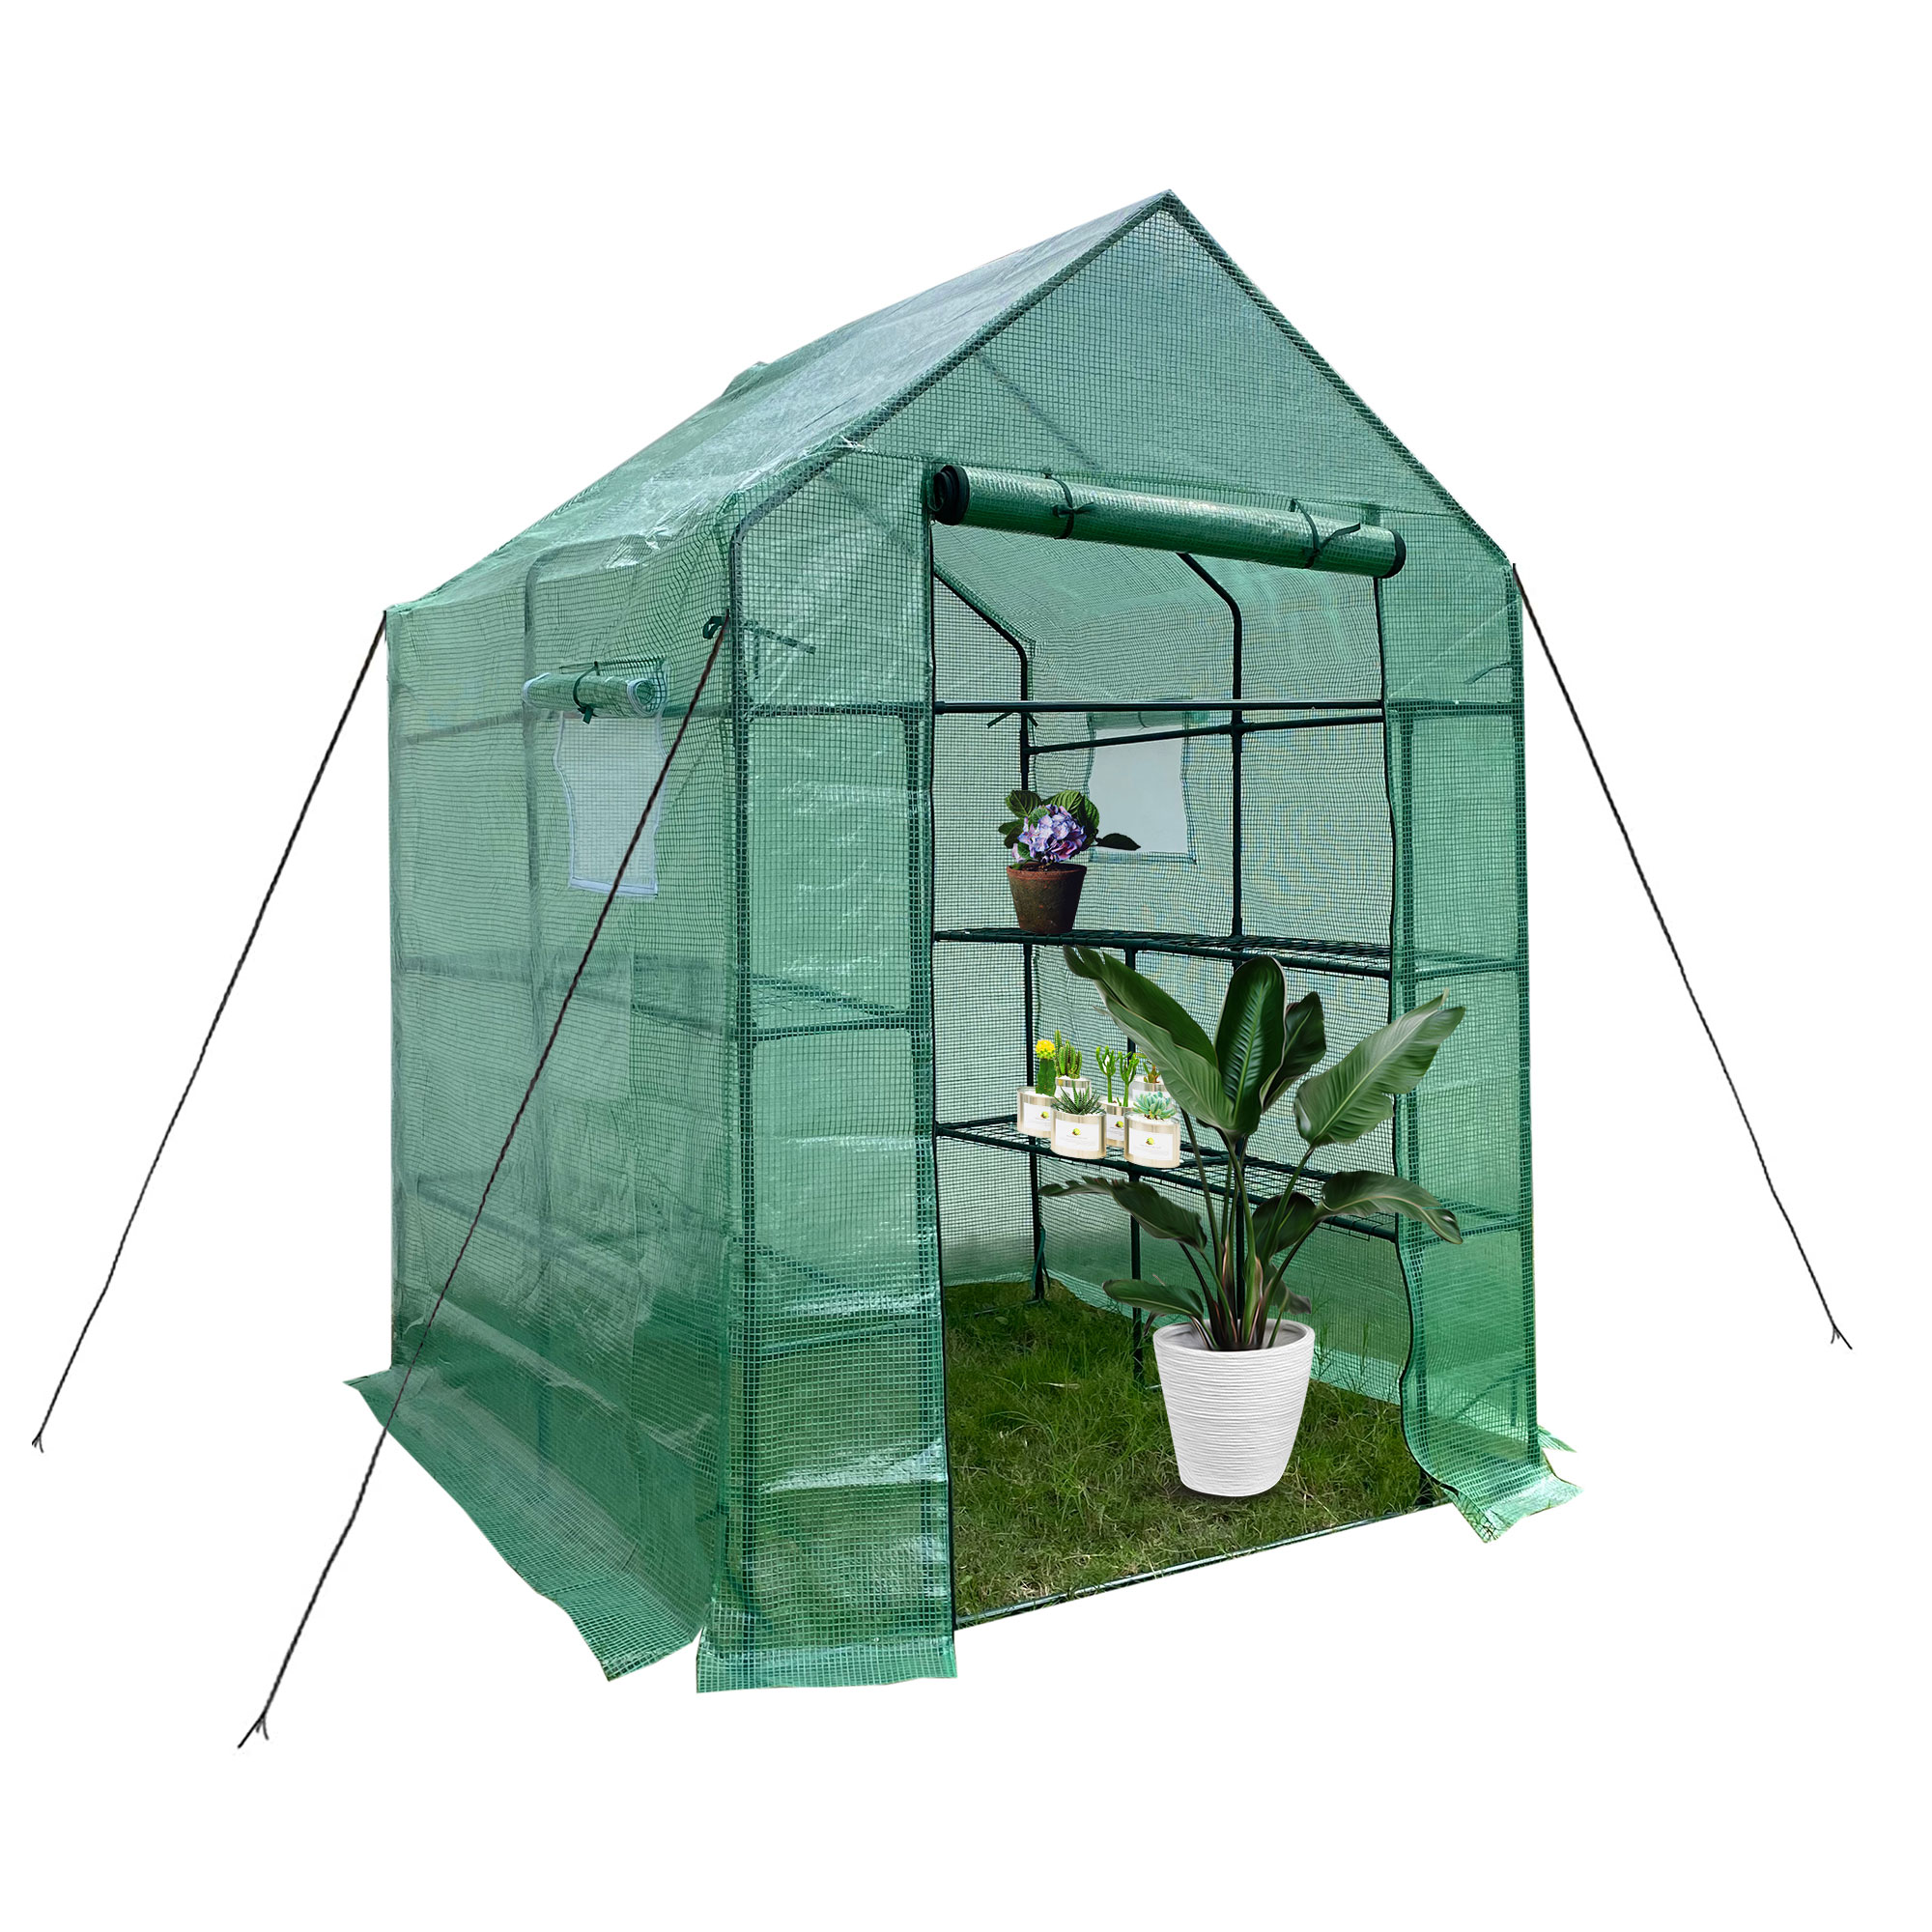 [US Direct] Mini Walk-in Greenhouse Indoor Outdoor -2 Tier 8 Shelves- Portable Plant Gardening Greenhouse (56L x 56W x 76H Inches), Grow Plant Herbs Flowers Hot House